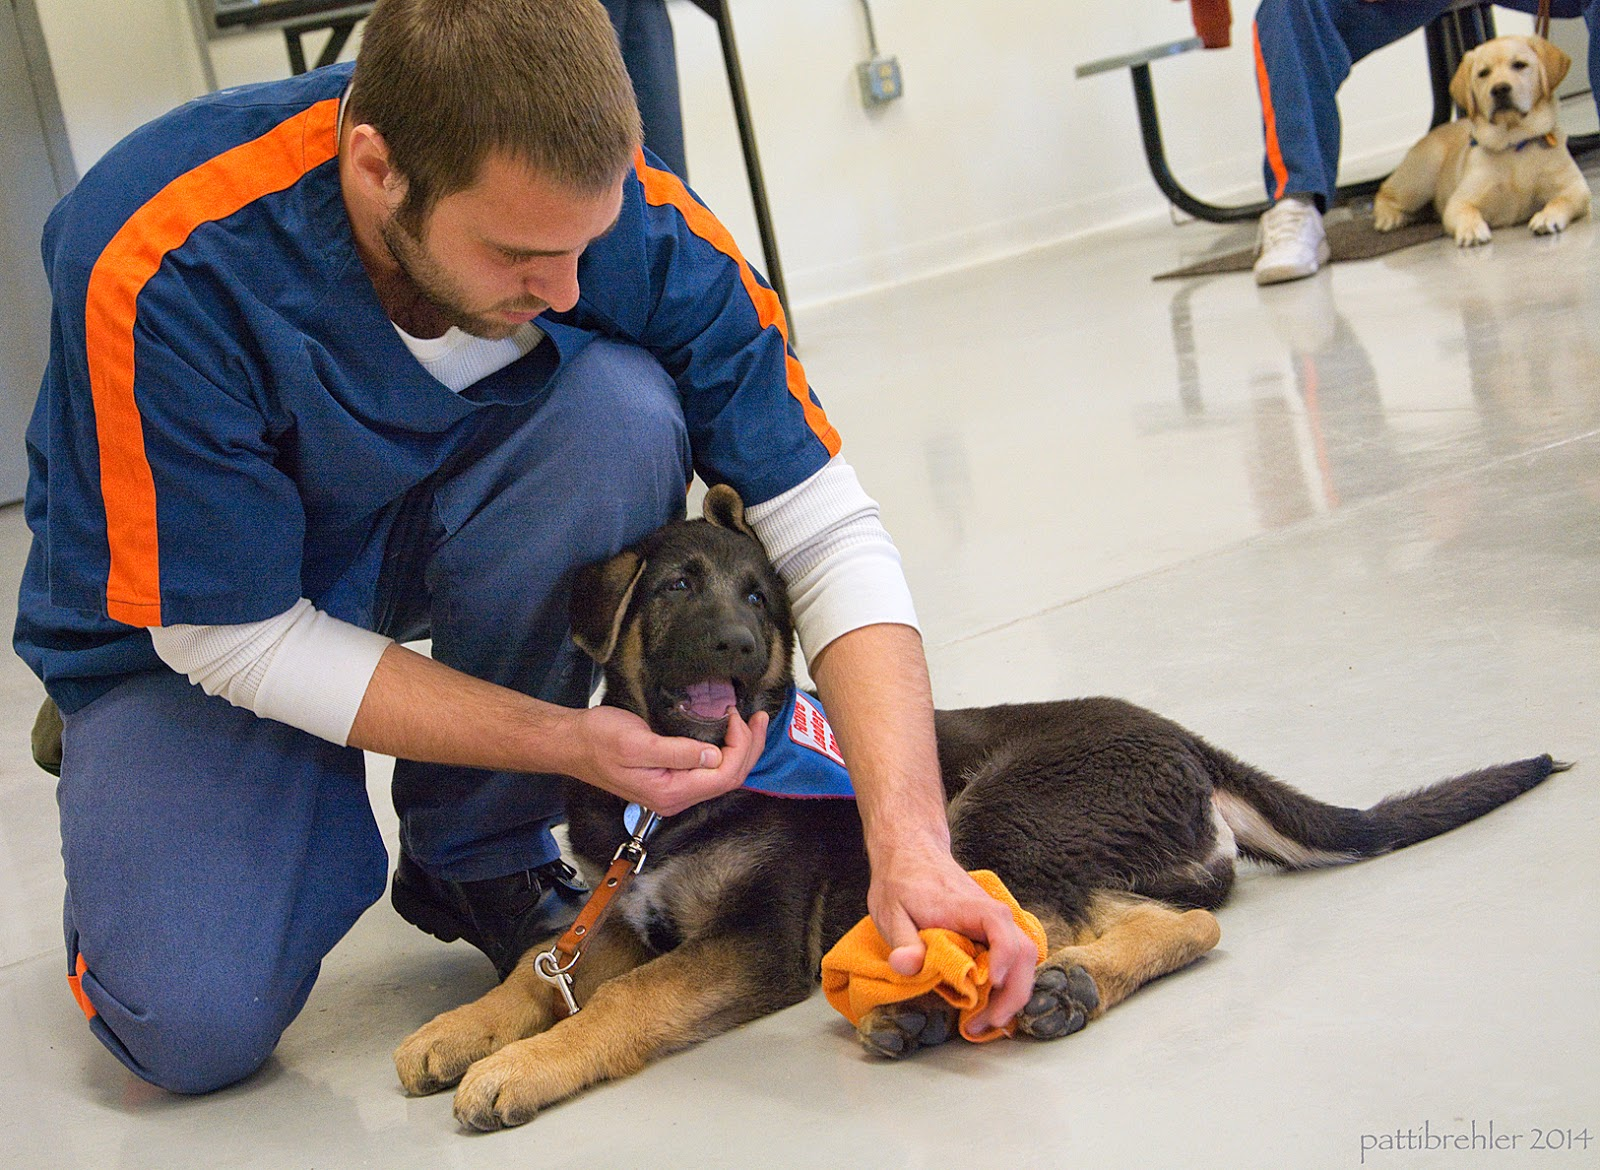 A man is half-kneeling on the painted concrete floor on the left side of the photo. He is wearing the prison unform and is looking down at a small german shepherd puppy lying on the floor in front of him and to the right. The man's left hand is wiping the left rear paw of the puppy with an orange rag. The man's right hand is holding the lower jaw of the puppy, whose mouth is open. The puppy is wearing the blue Future Leader Dog bandana. There is a yellow lab puppy in the far background at the top right of the picture, lying on a mat next to a man's leg.